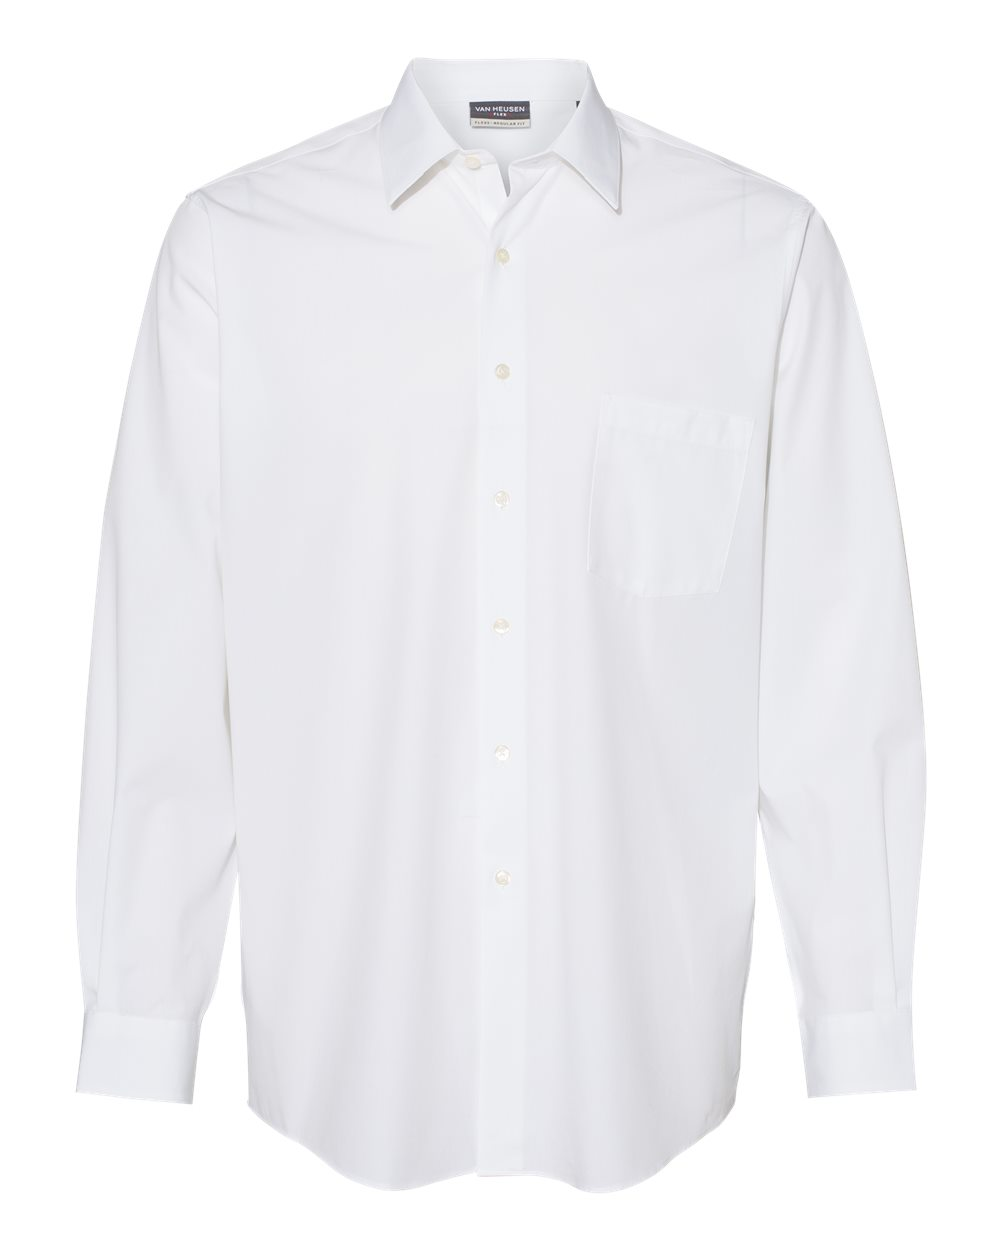 Van Heusen 13V0461 - Flex 3 Shirt With Four-way Stretch